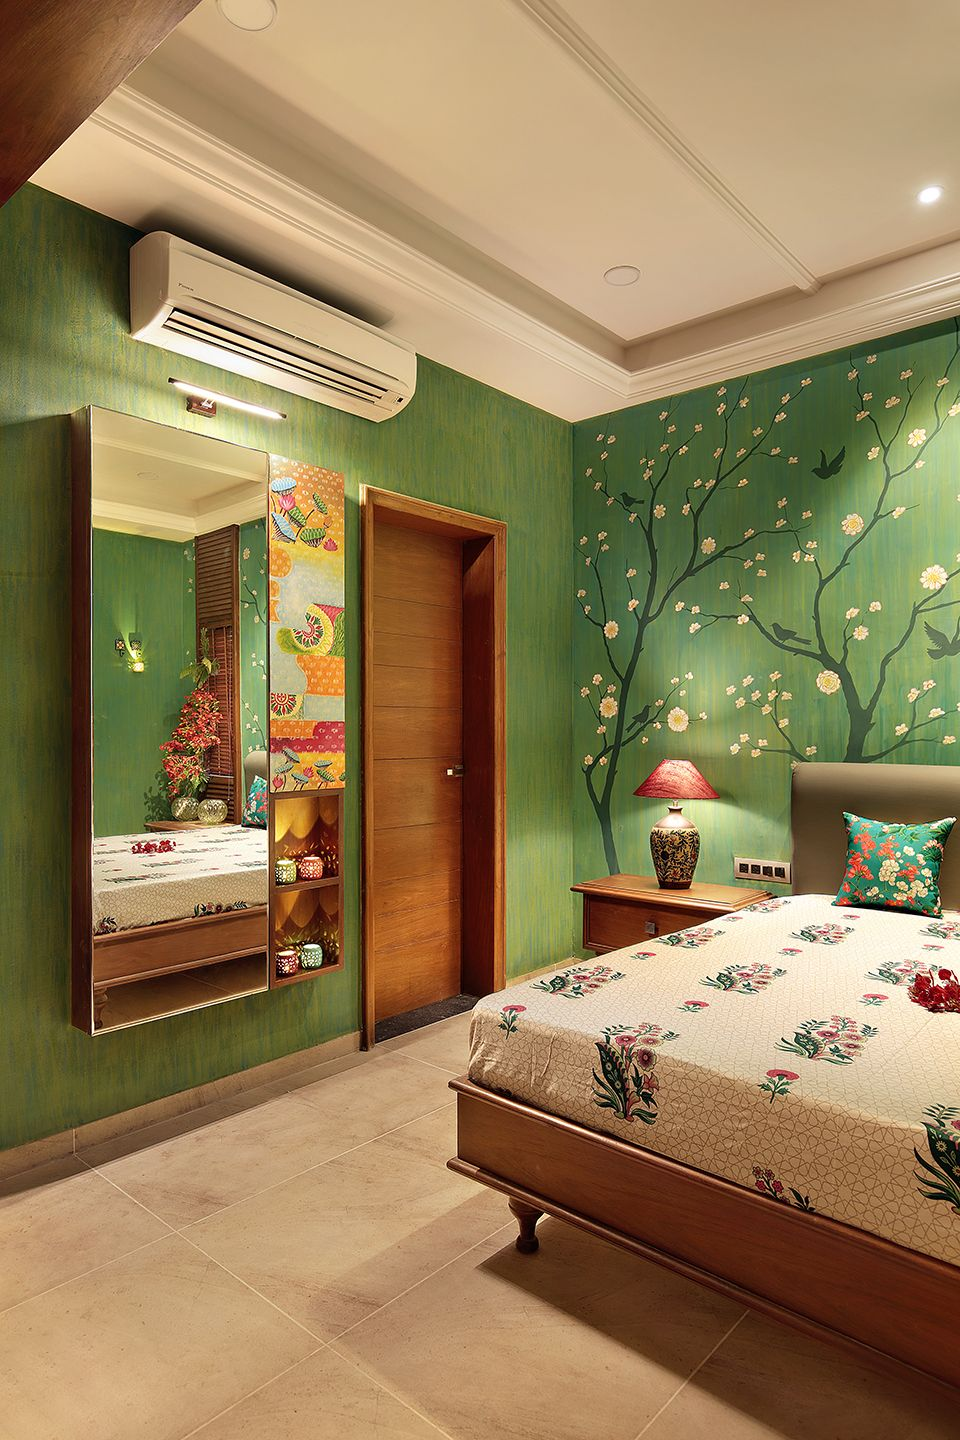 Hand painted bedroom wall with forest scene in moss green